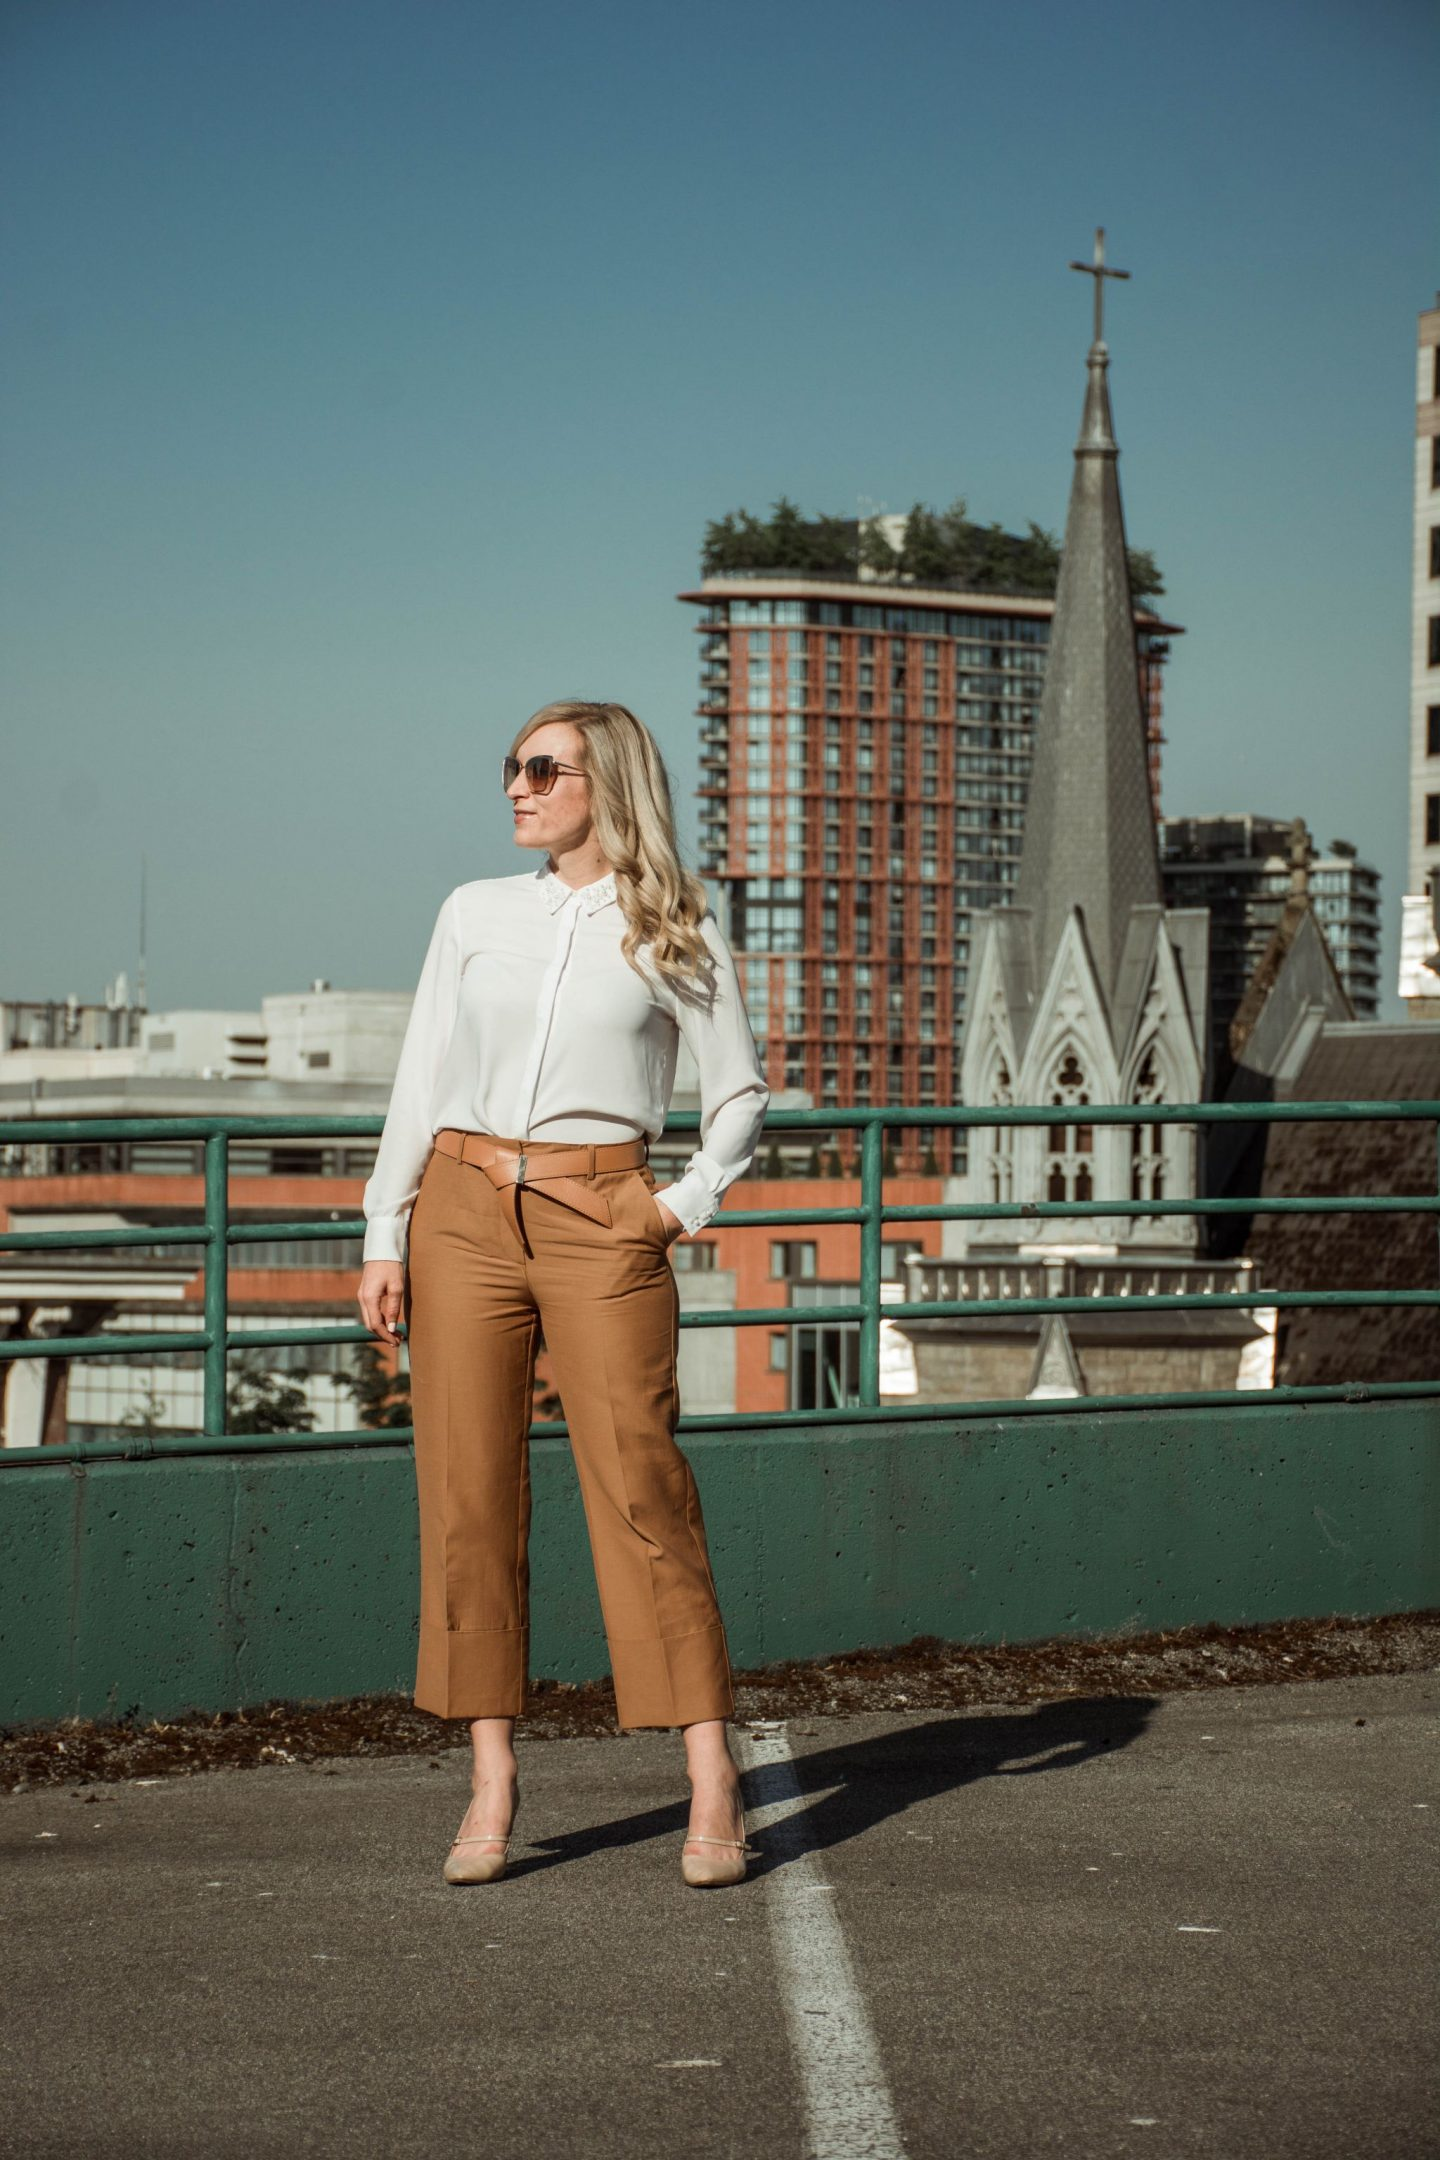 fashion blogger LegalLee Blonde camel culottes and white blouse - how to wear culottes to work